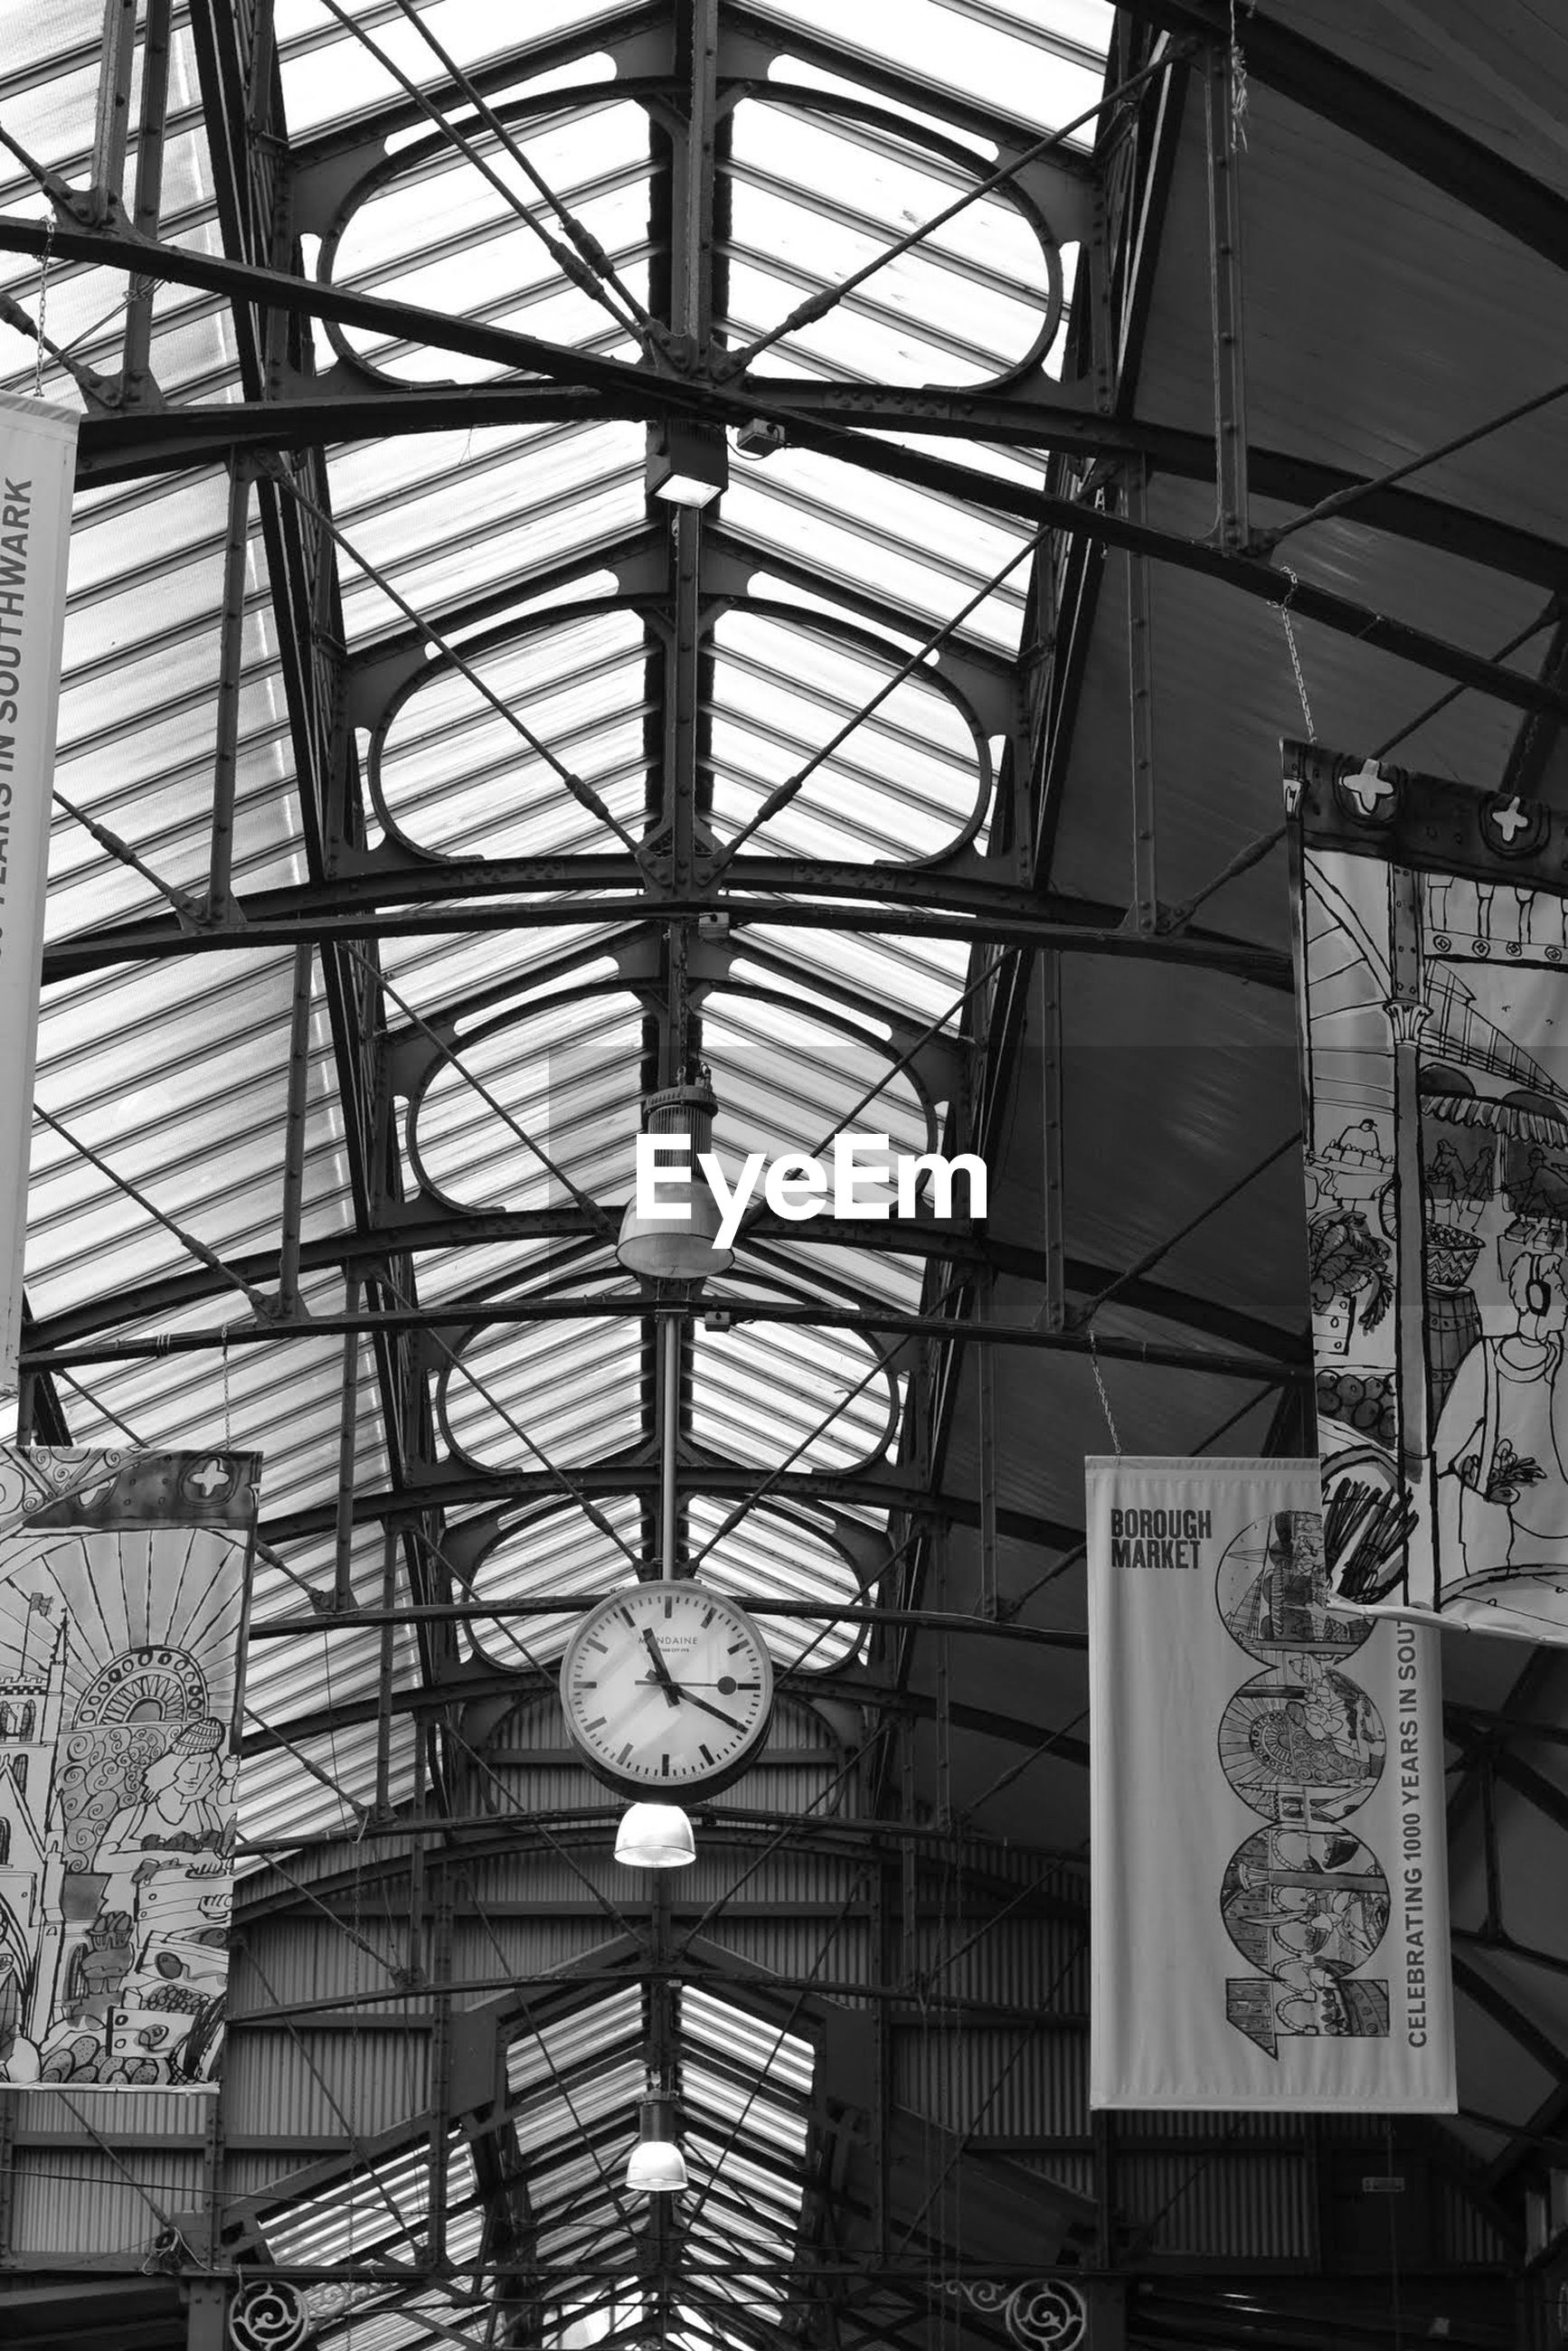 indoors, architecture, ceiling, built structure, low angle view, metal, pattern, metallic, grid, design, architectural feature, directly below, glass - material, skylight, full frame, day, backgrounds, no people, diminishing perspective, railroad station